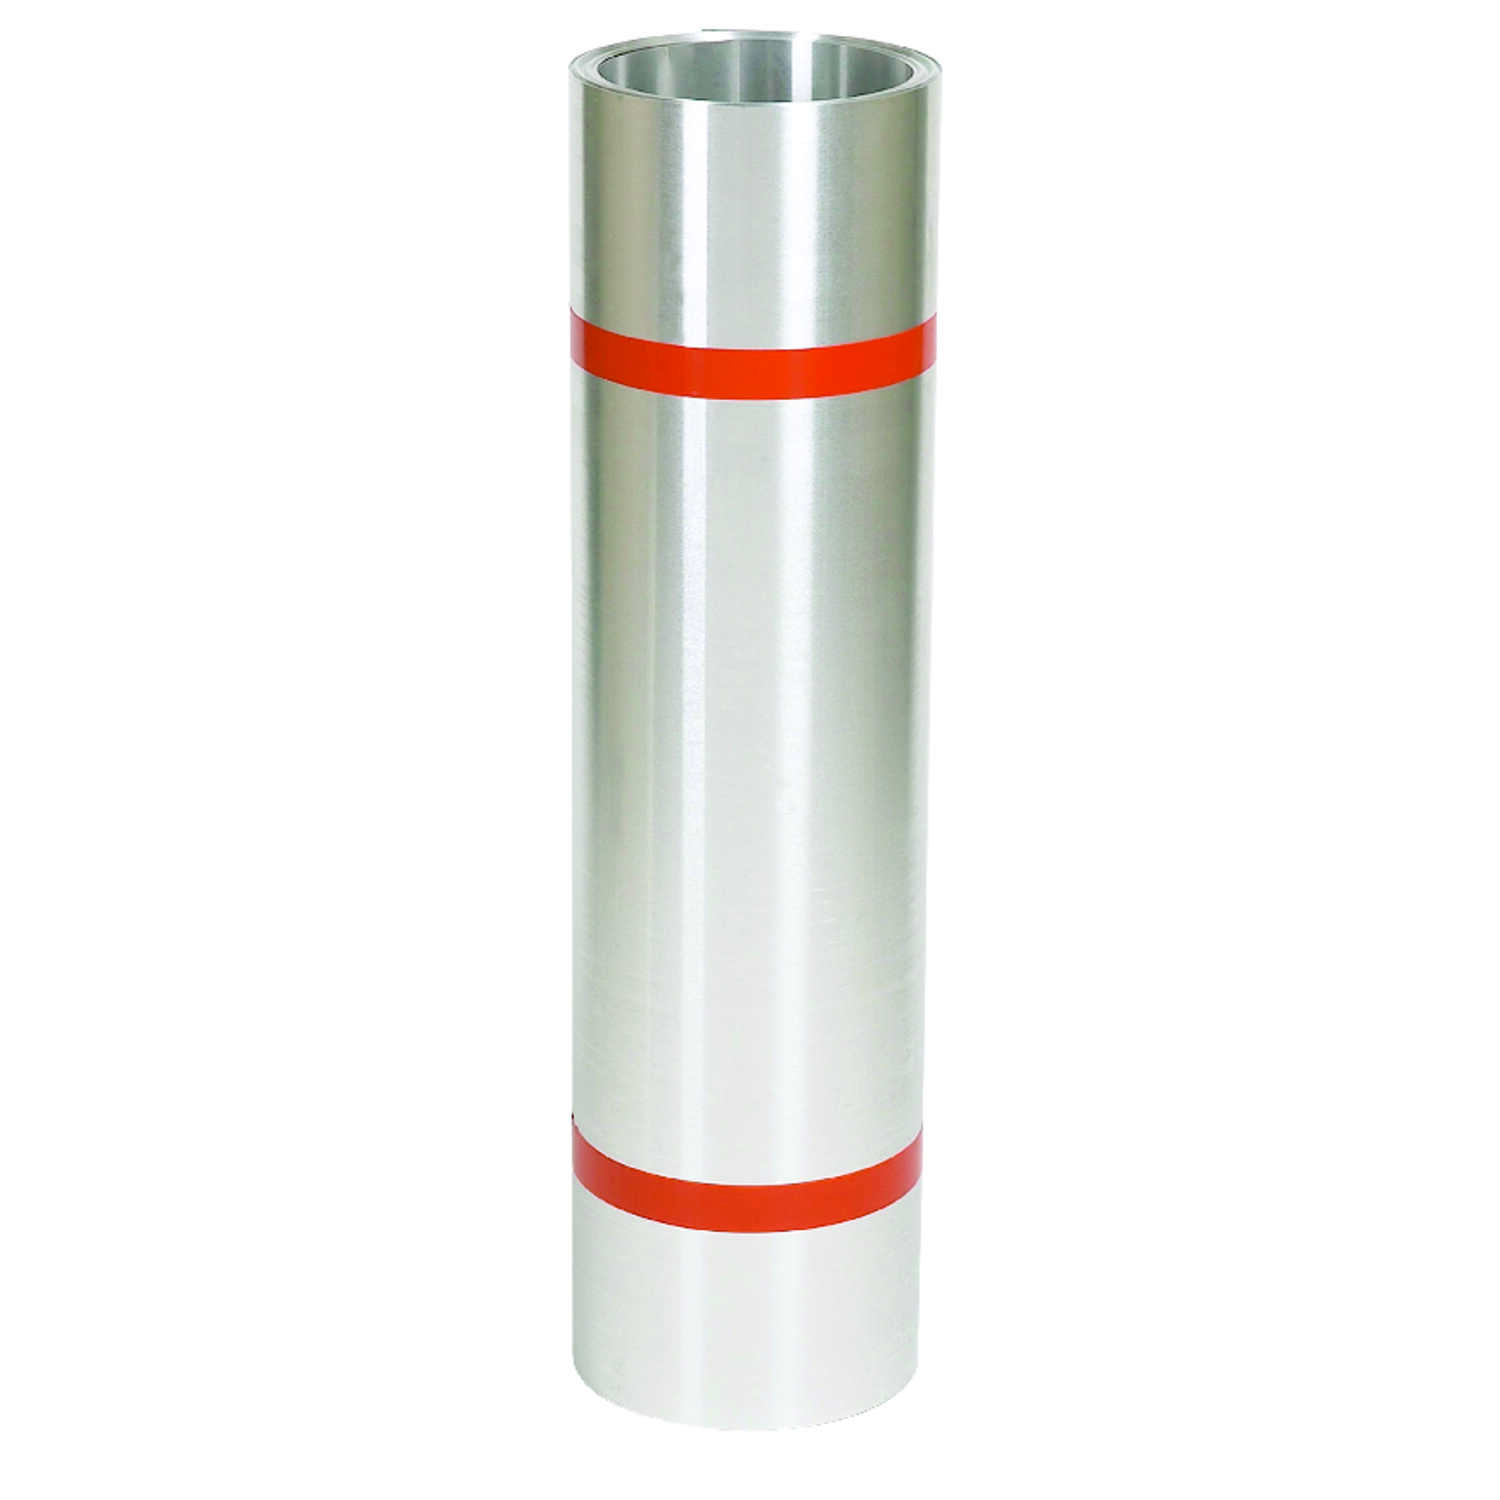 Amerimax  20 in. H x 3.25 in. W x 10 ft. L Silver  Aluminum  Roll  Roll Valley Flashing